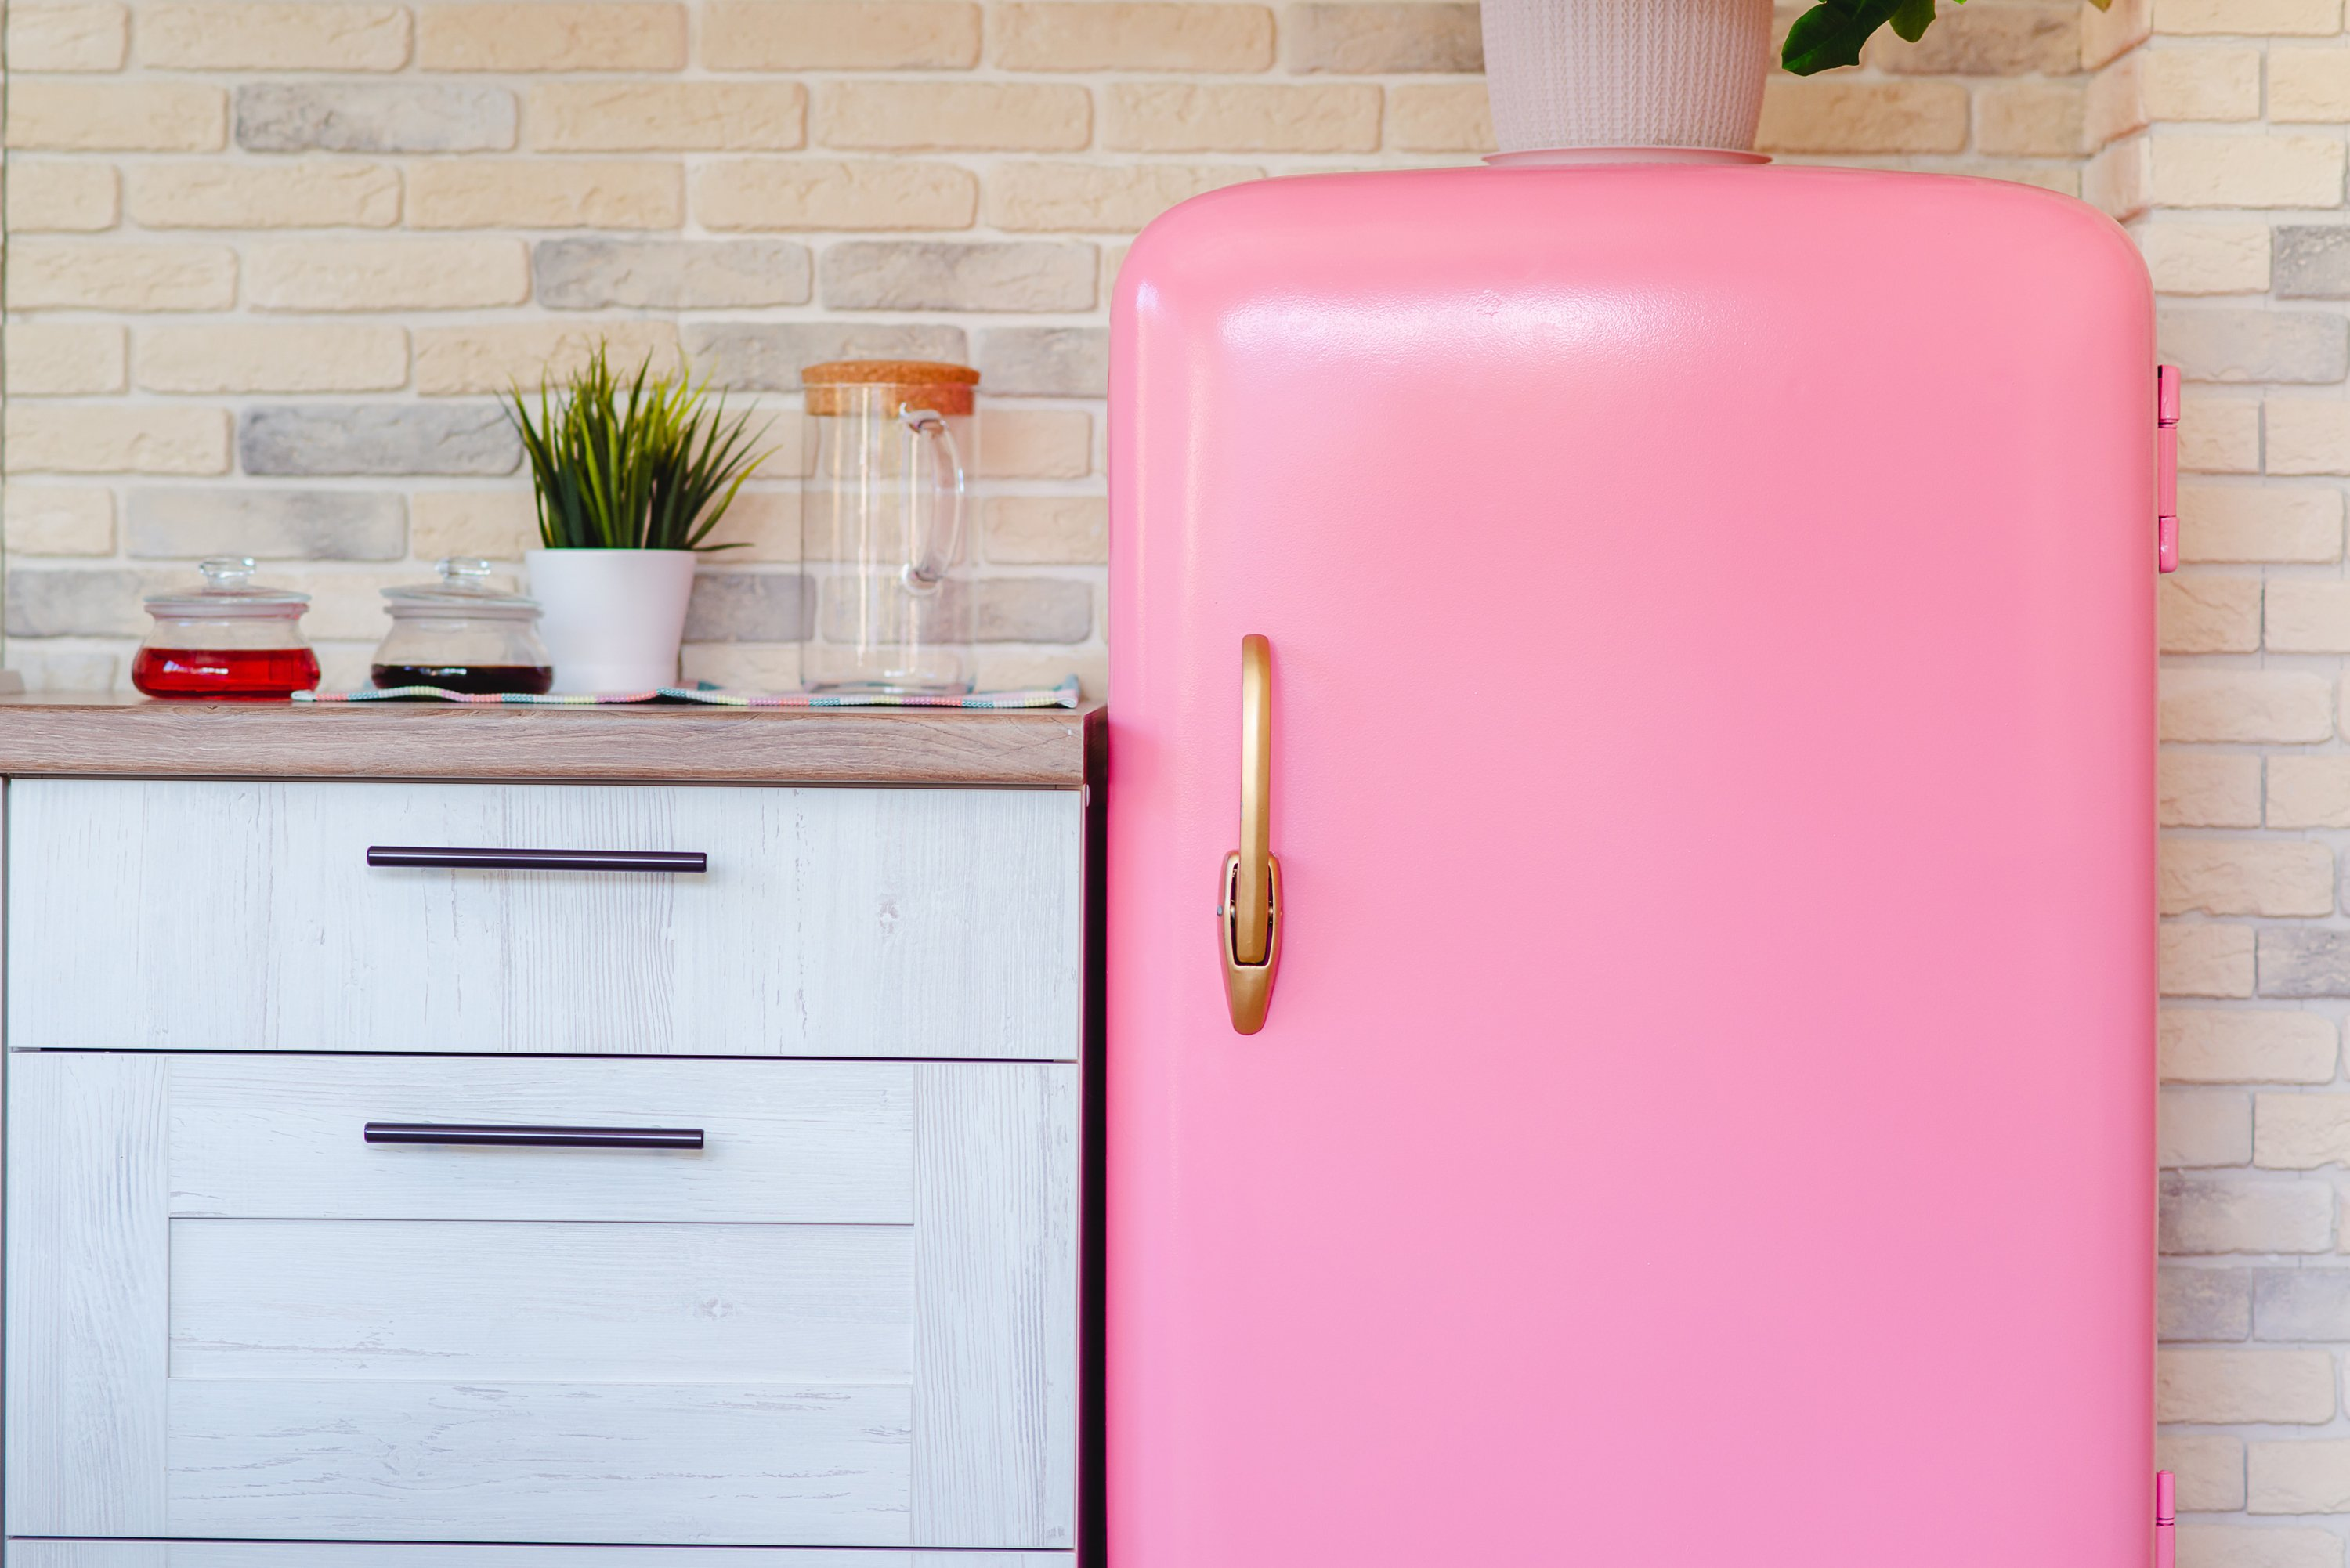 Pink refrigerator in retro style example image 1